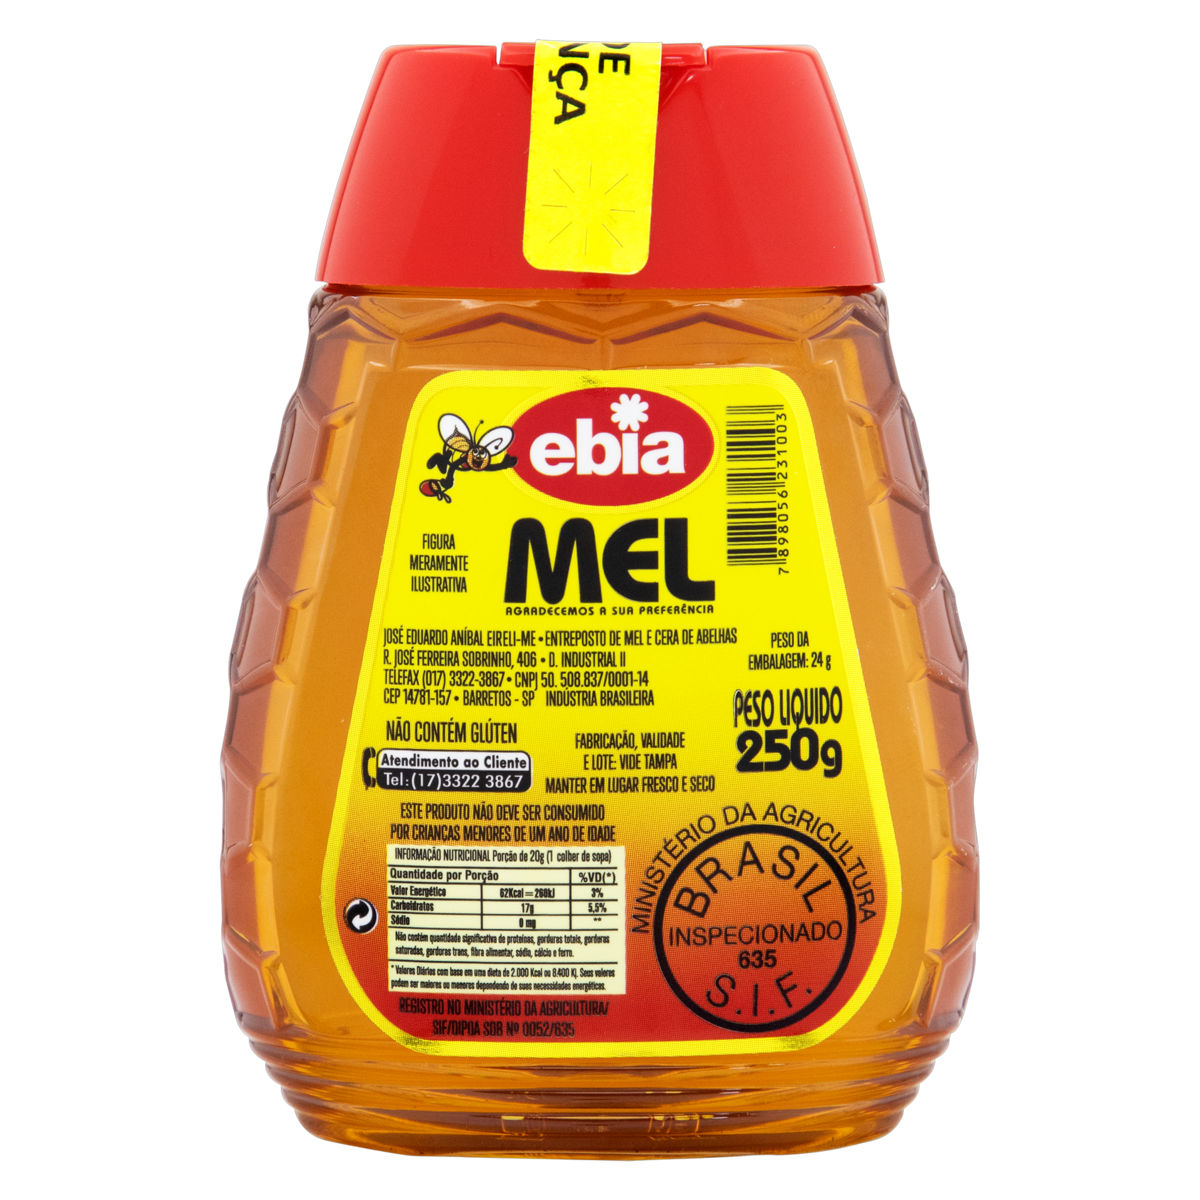 7898056231003 - MEL EBIA SQUEEZE 250G